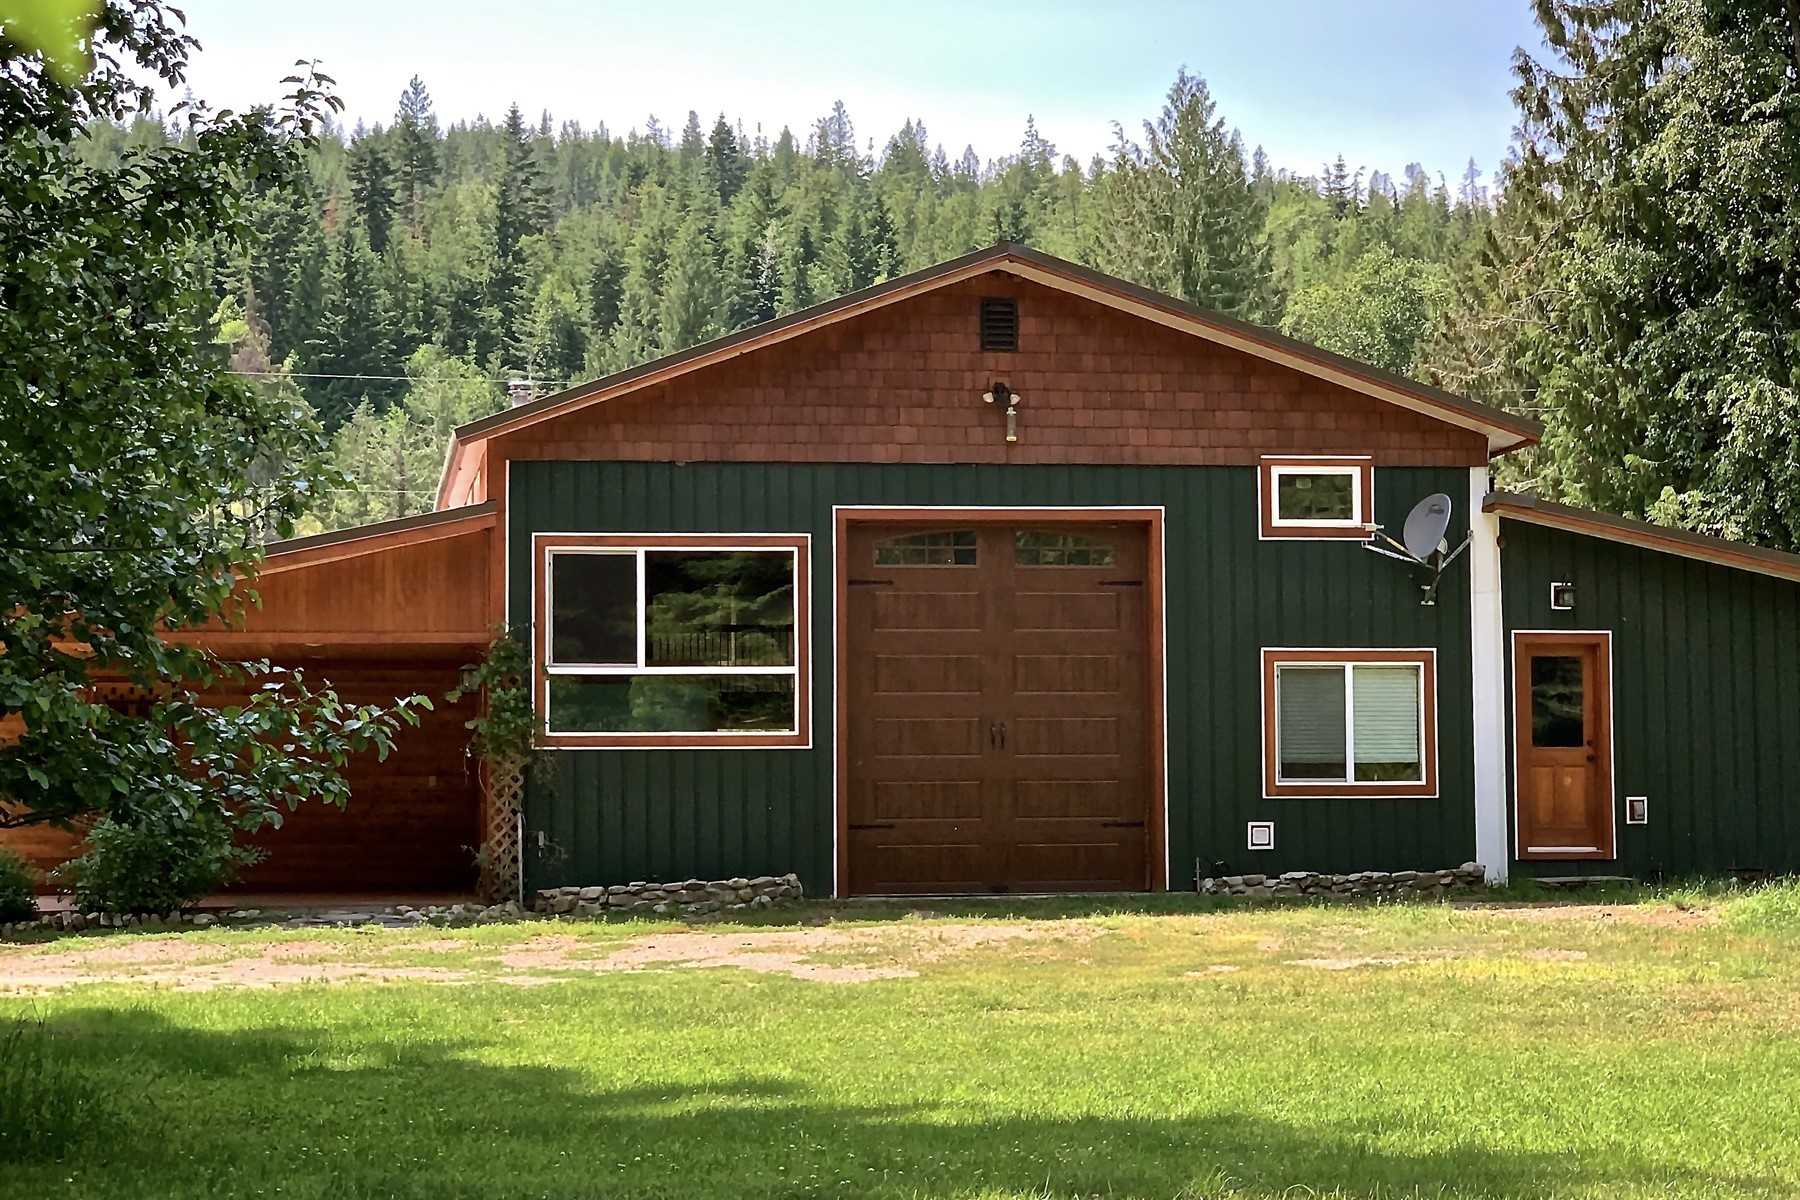 Single Family Homes for Sale at Serene Setting, Spring Creek, Acreage! 210 Shadow Valley Lane Clark Fork, Idaho 83811 United States